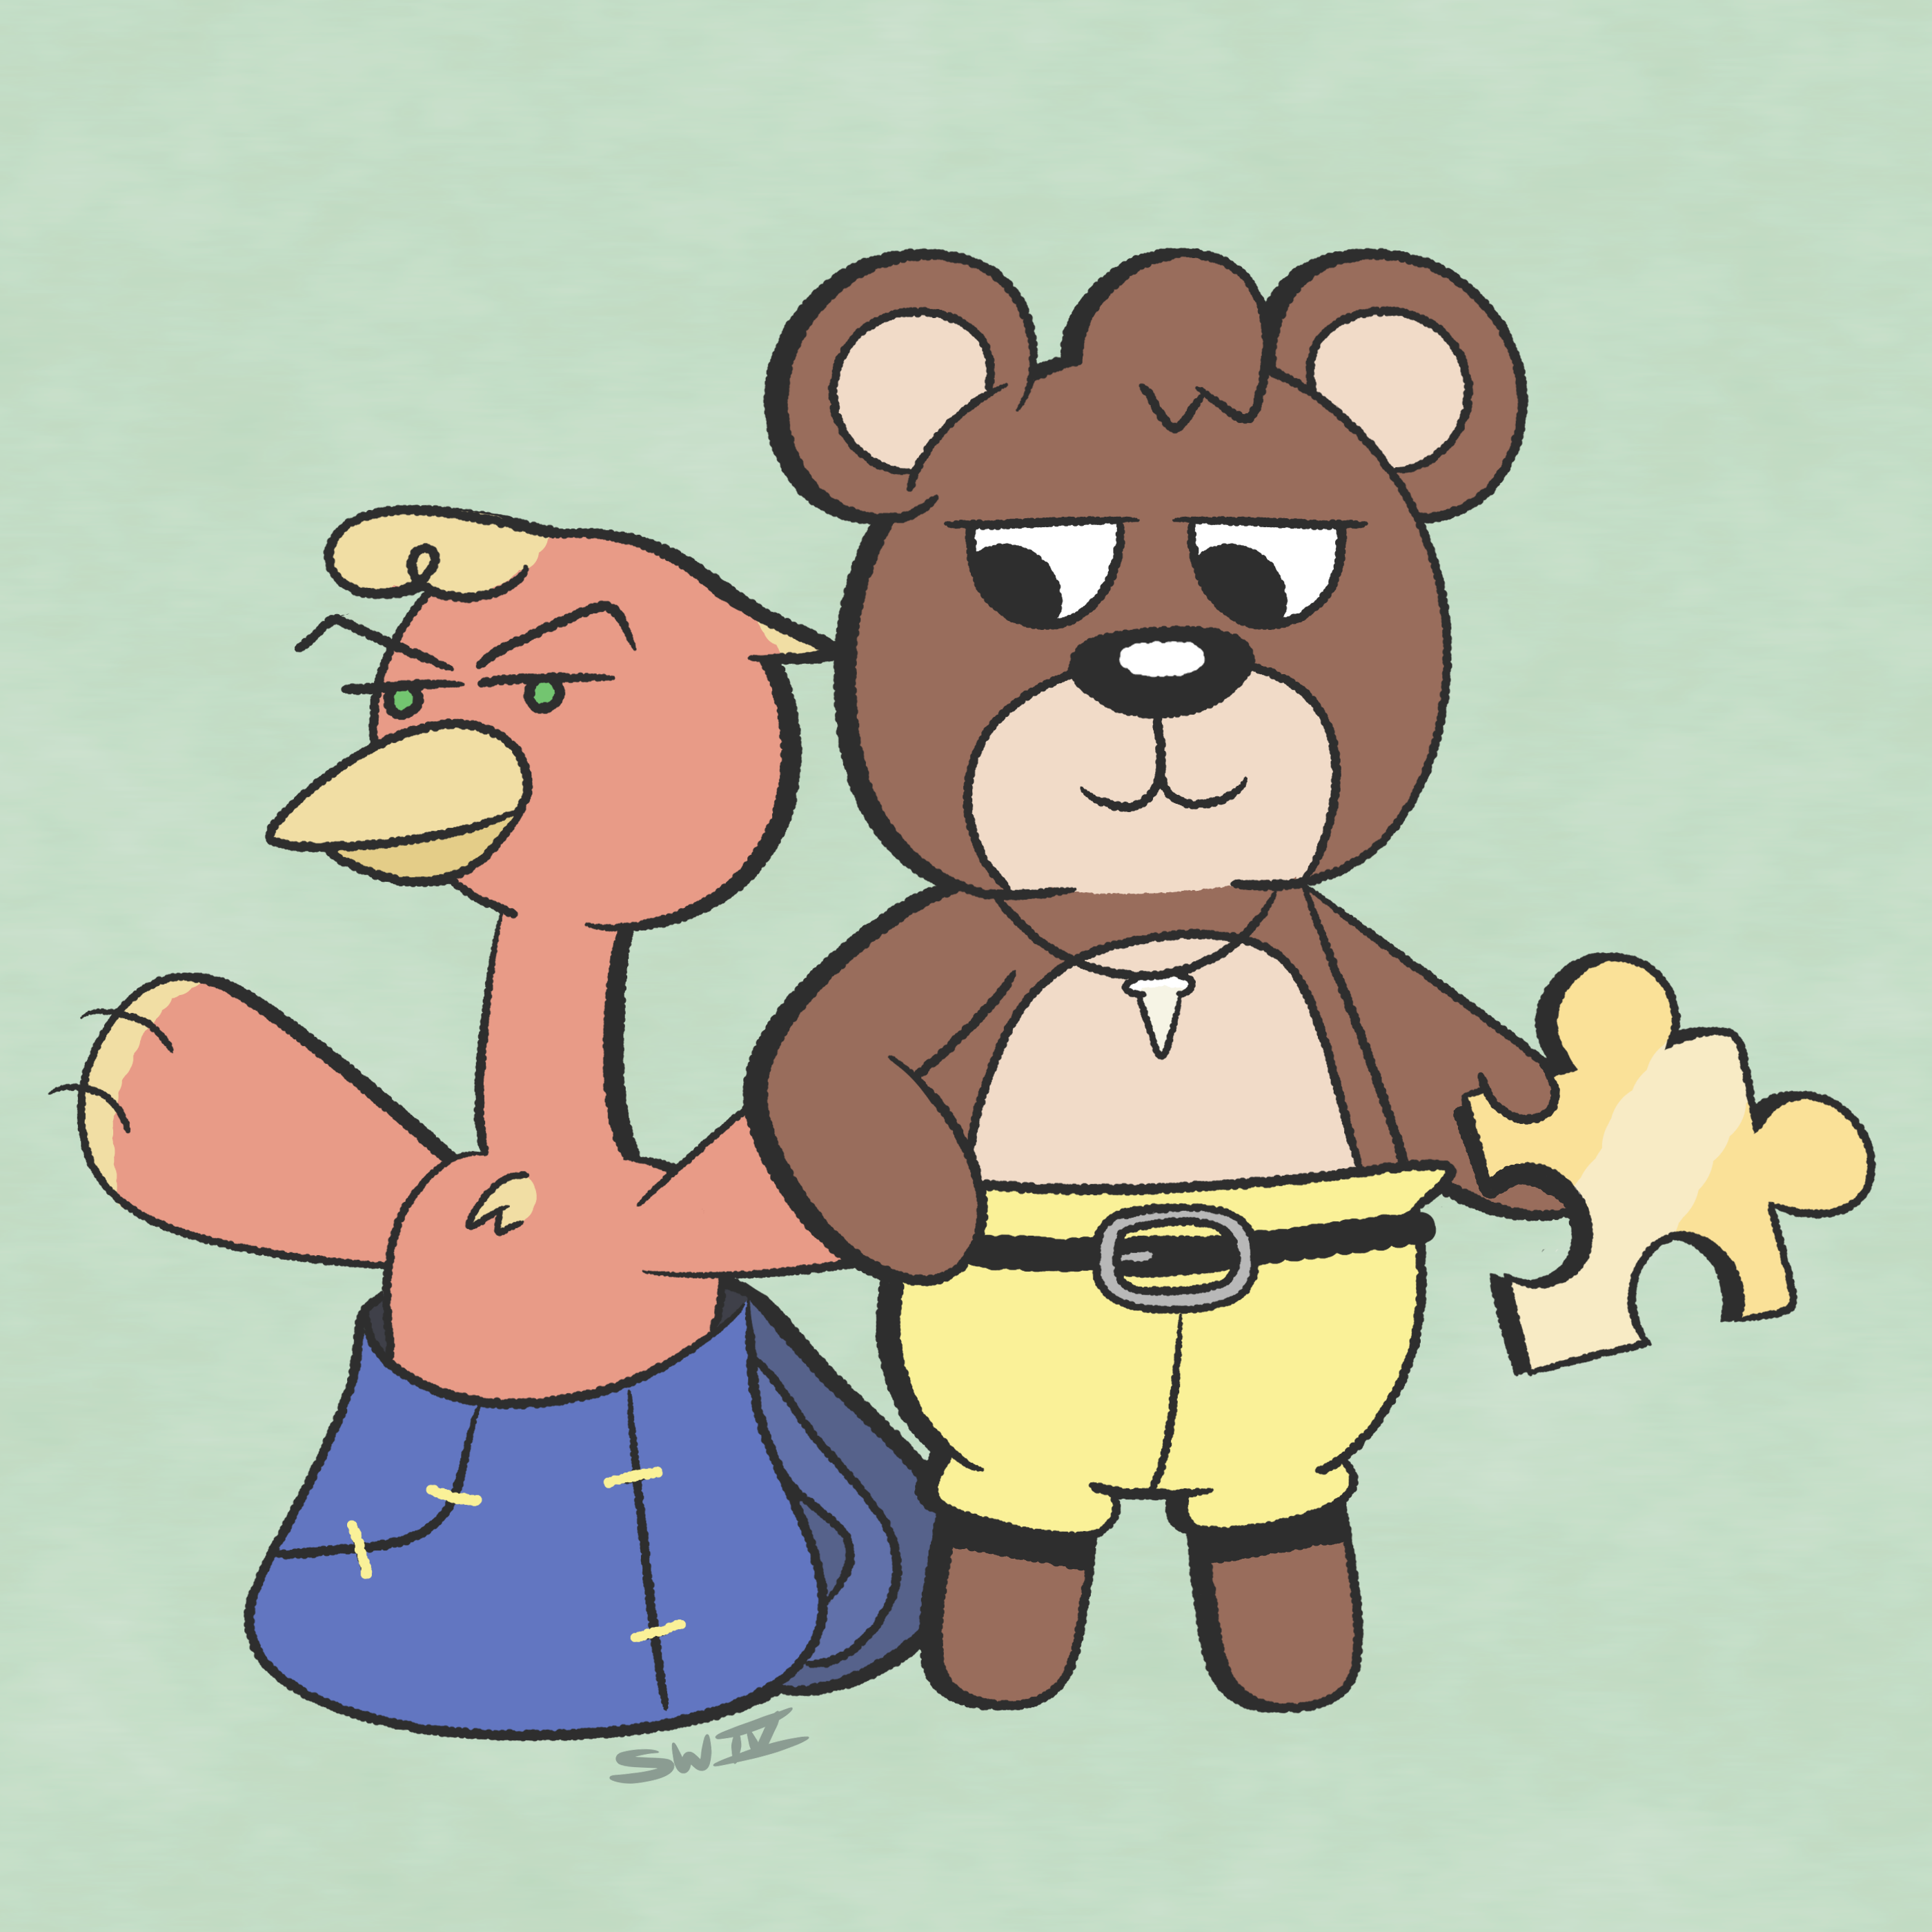 Banjo-Kazooie x Animal Crossing